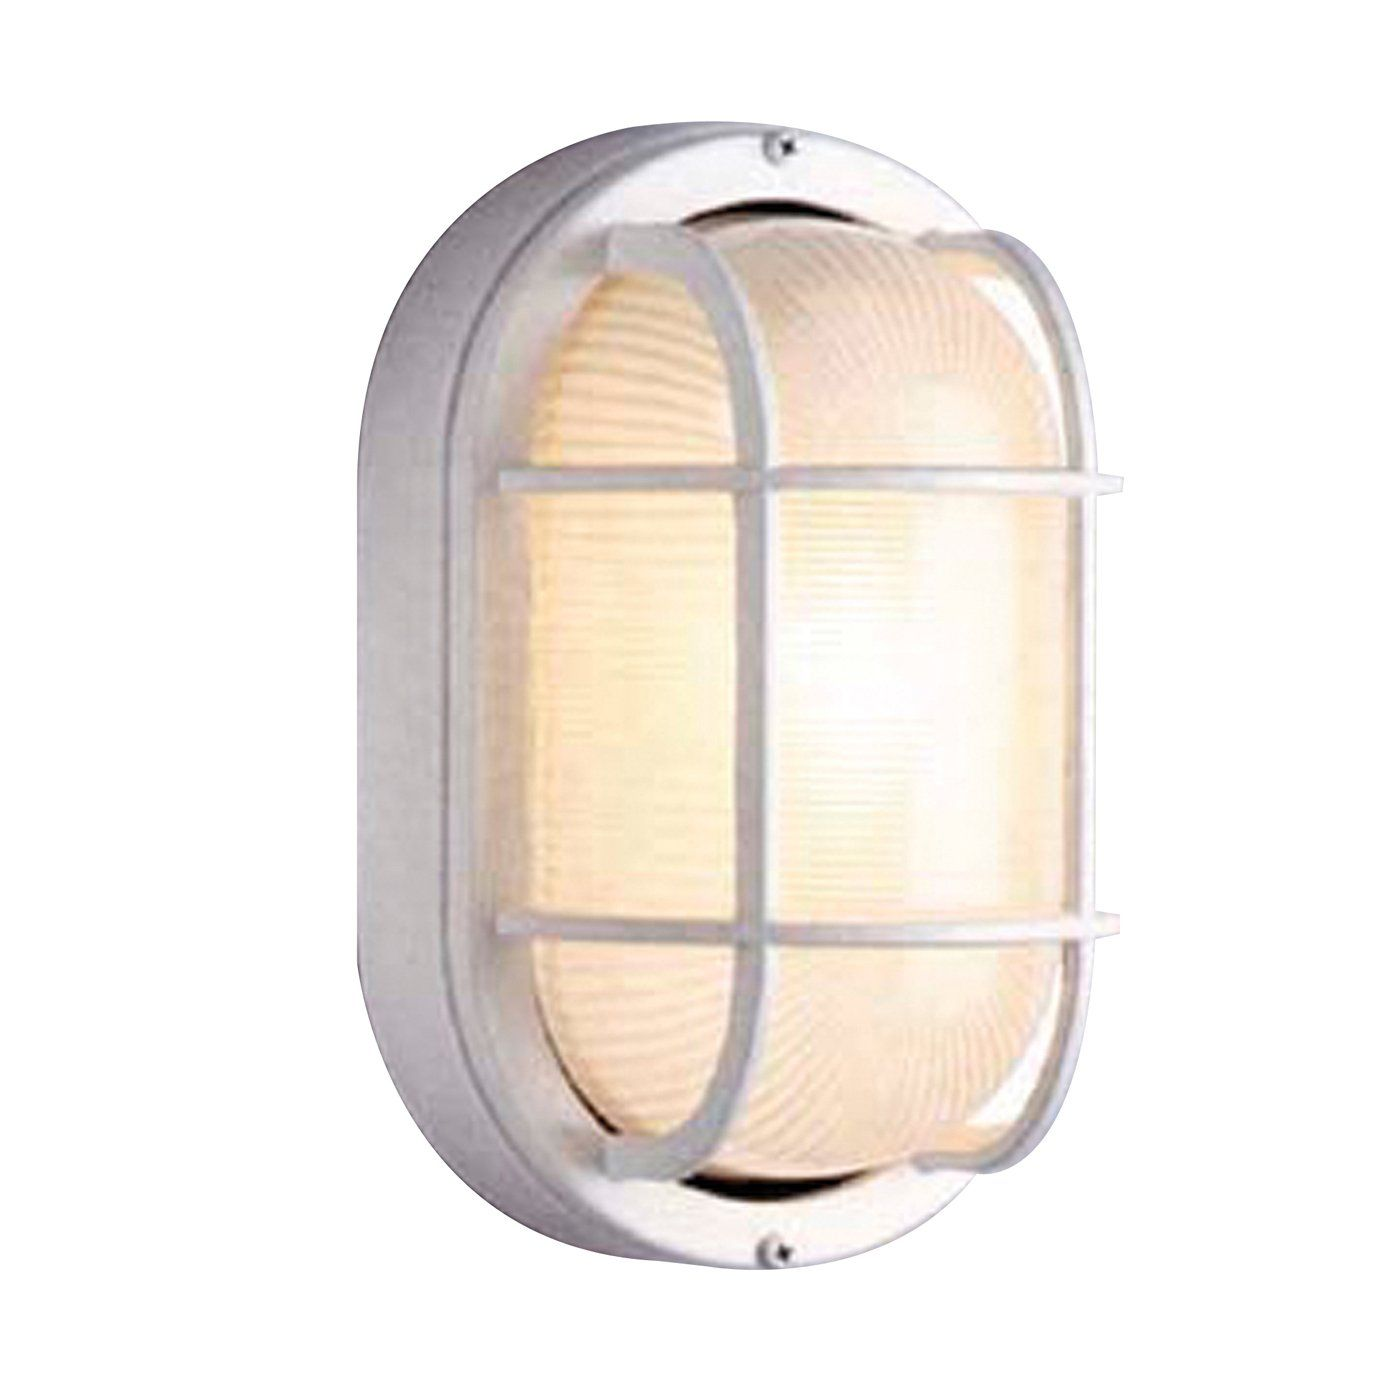 All Fit Tr41005 Wht Oval Deck Outdoor Sconce White 21 92 Bulkhead Light Outdoor Light Fixtures Trans Globe Lighting